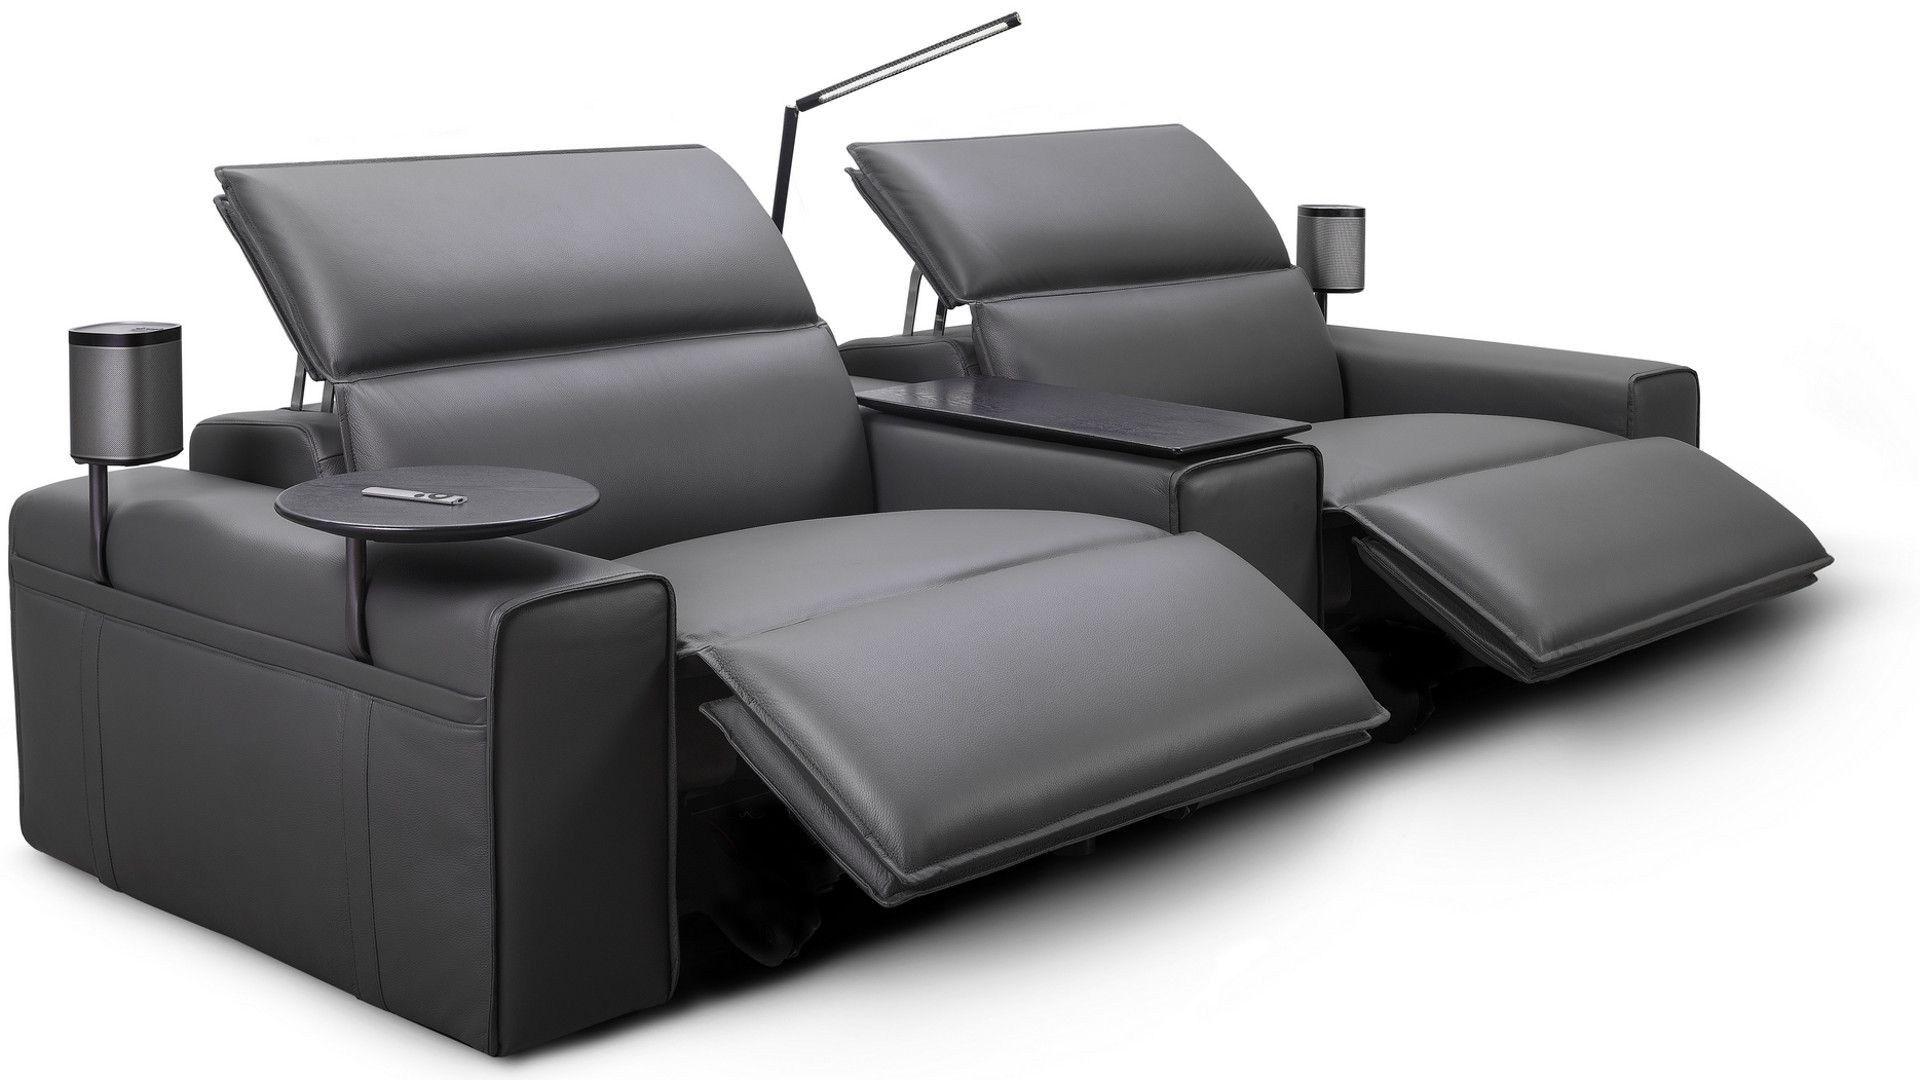 King Living S Smart Sofa Charges Your Smartphone Remembers Seating Position Gizmodo Australia